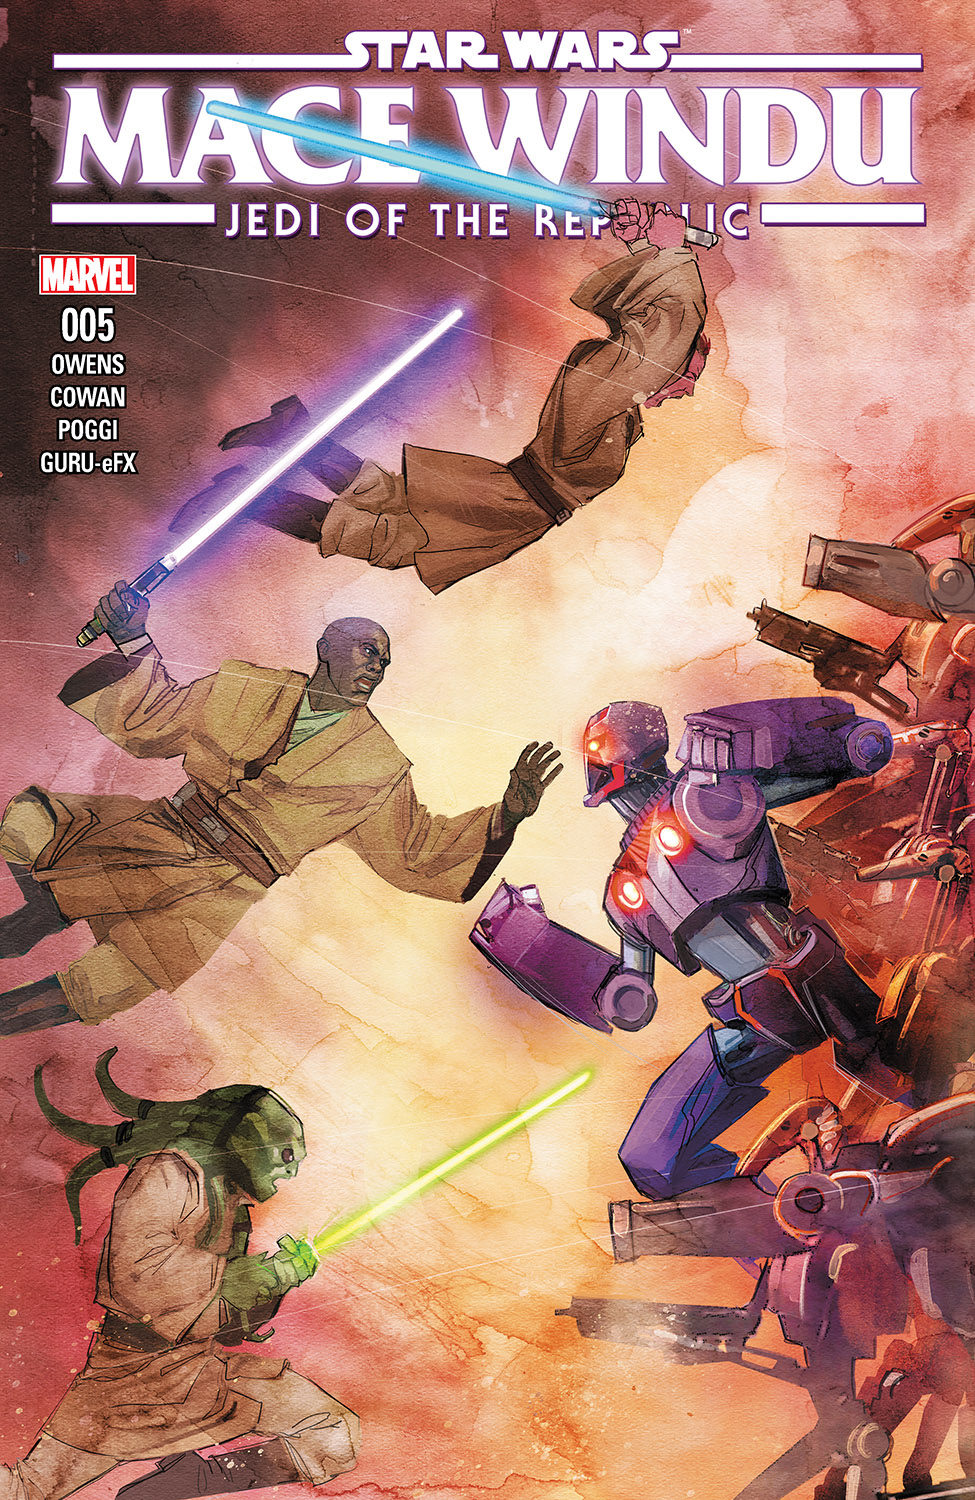 Star Wars: Jedi of the Republic – Mace Windu (2017) #5